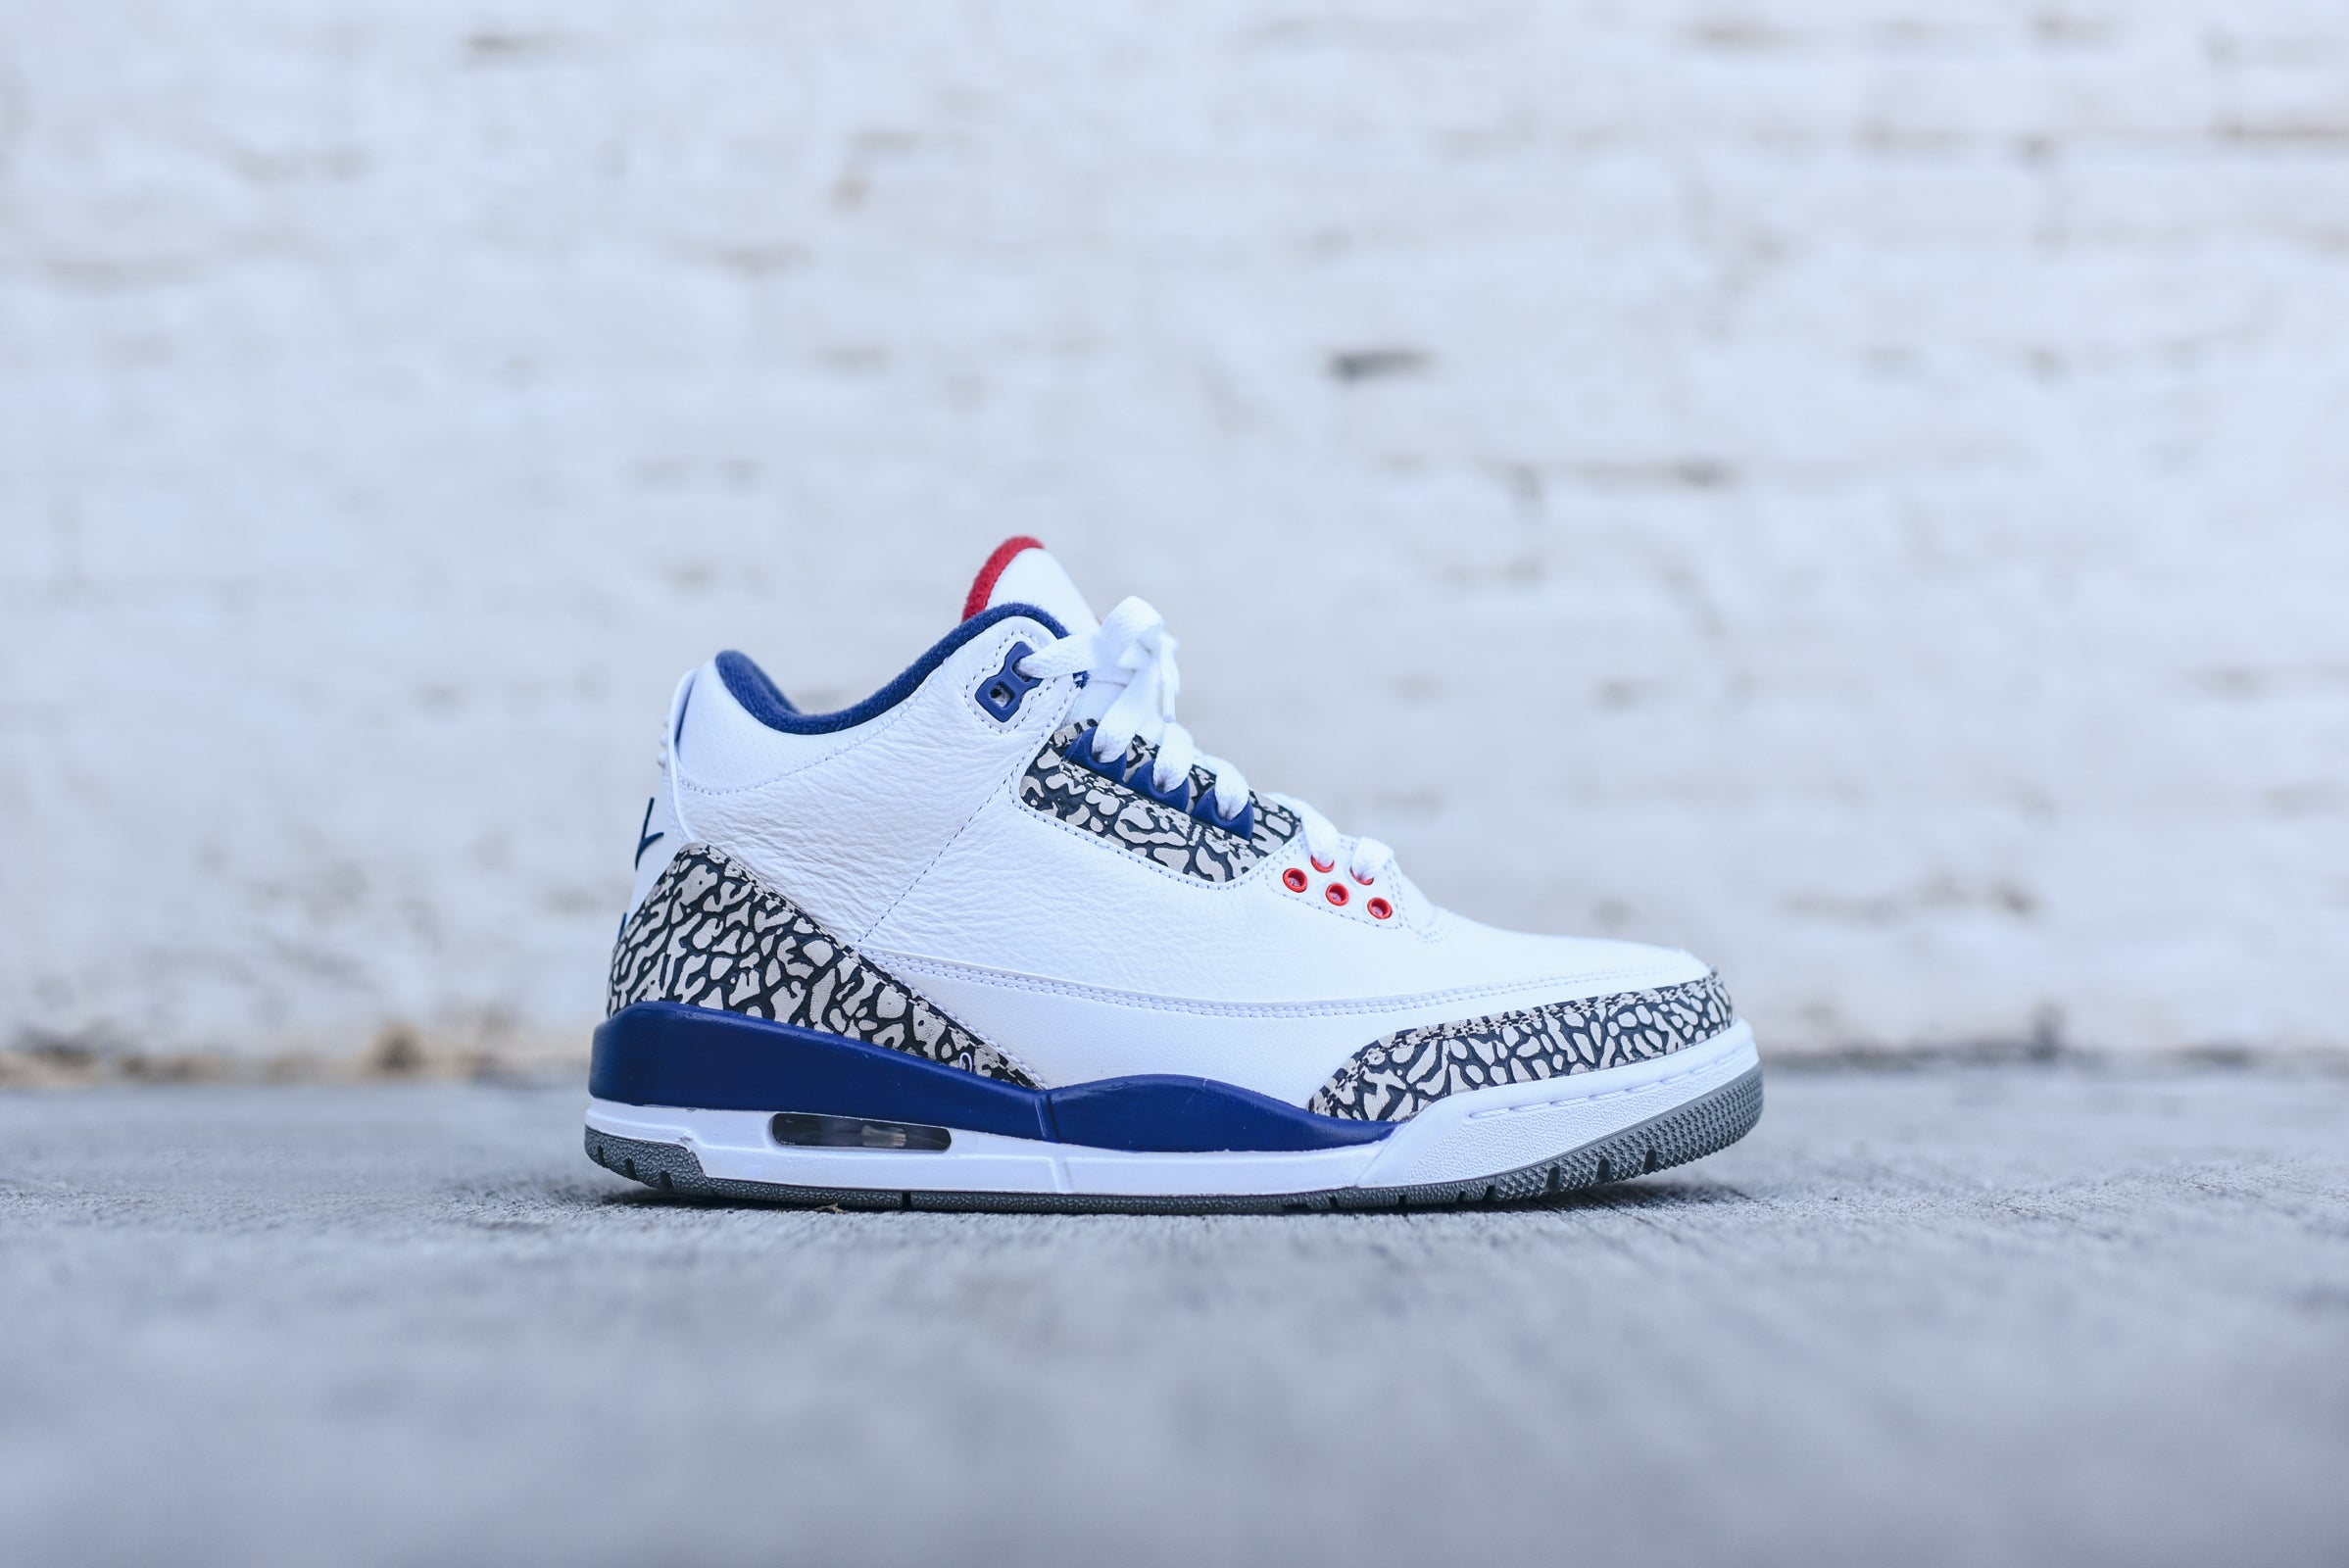 d5d3588578948e Nike Air Jordan 3 Retro OG - True Blue. November 23